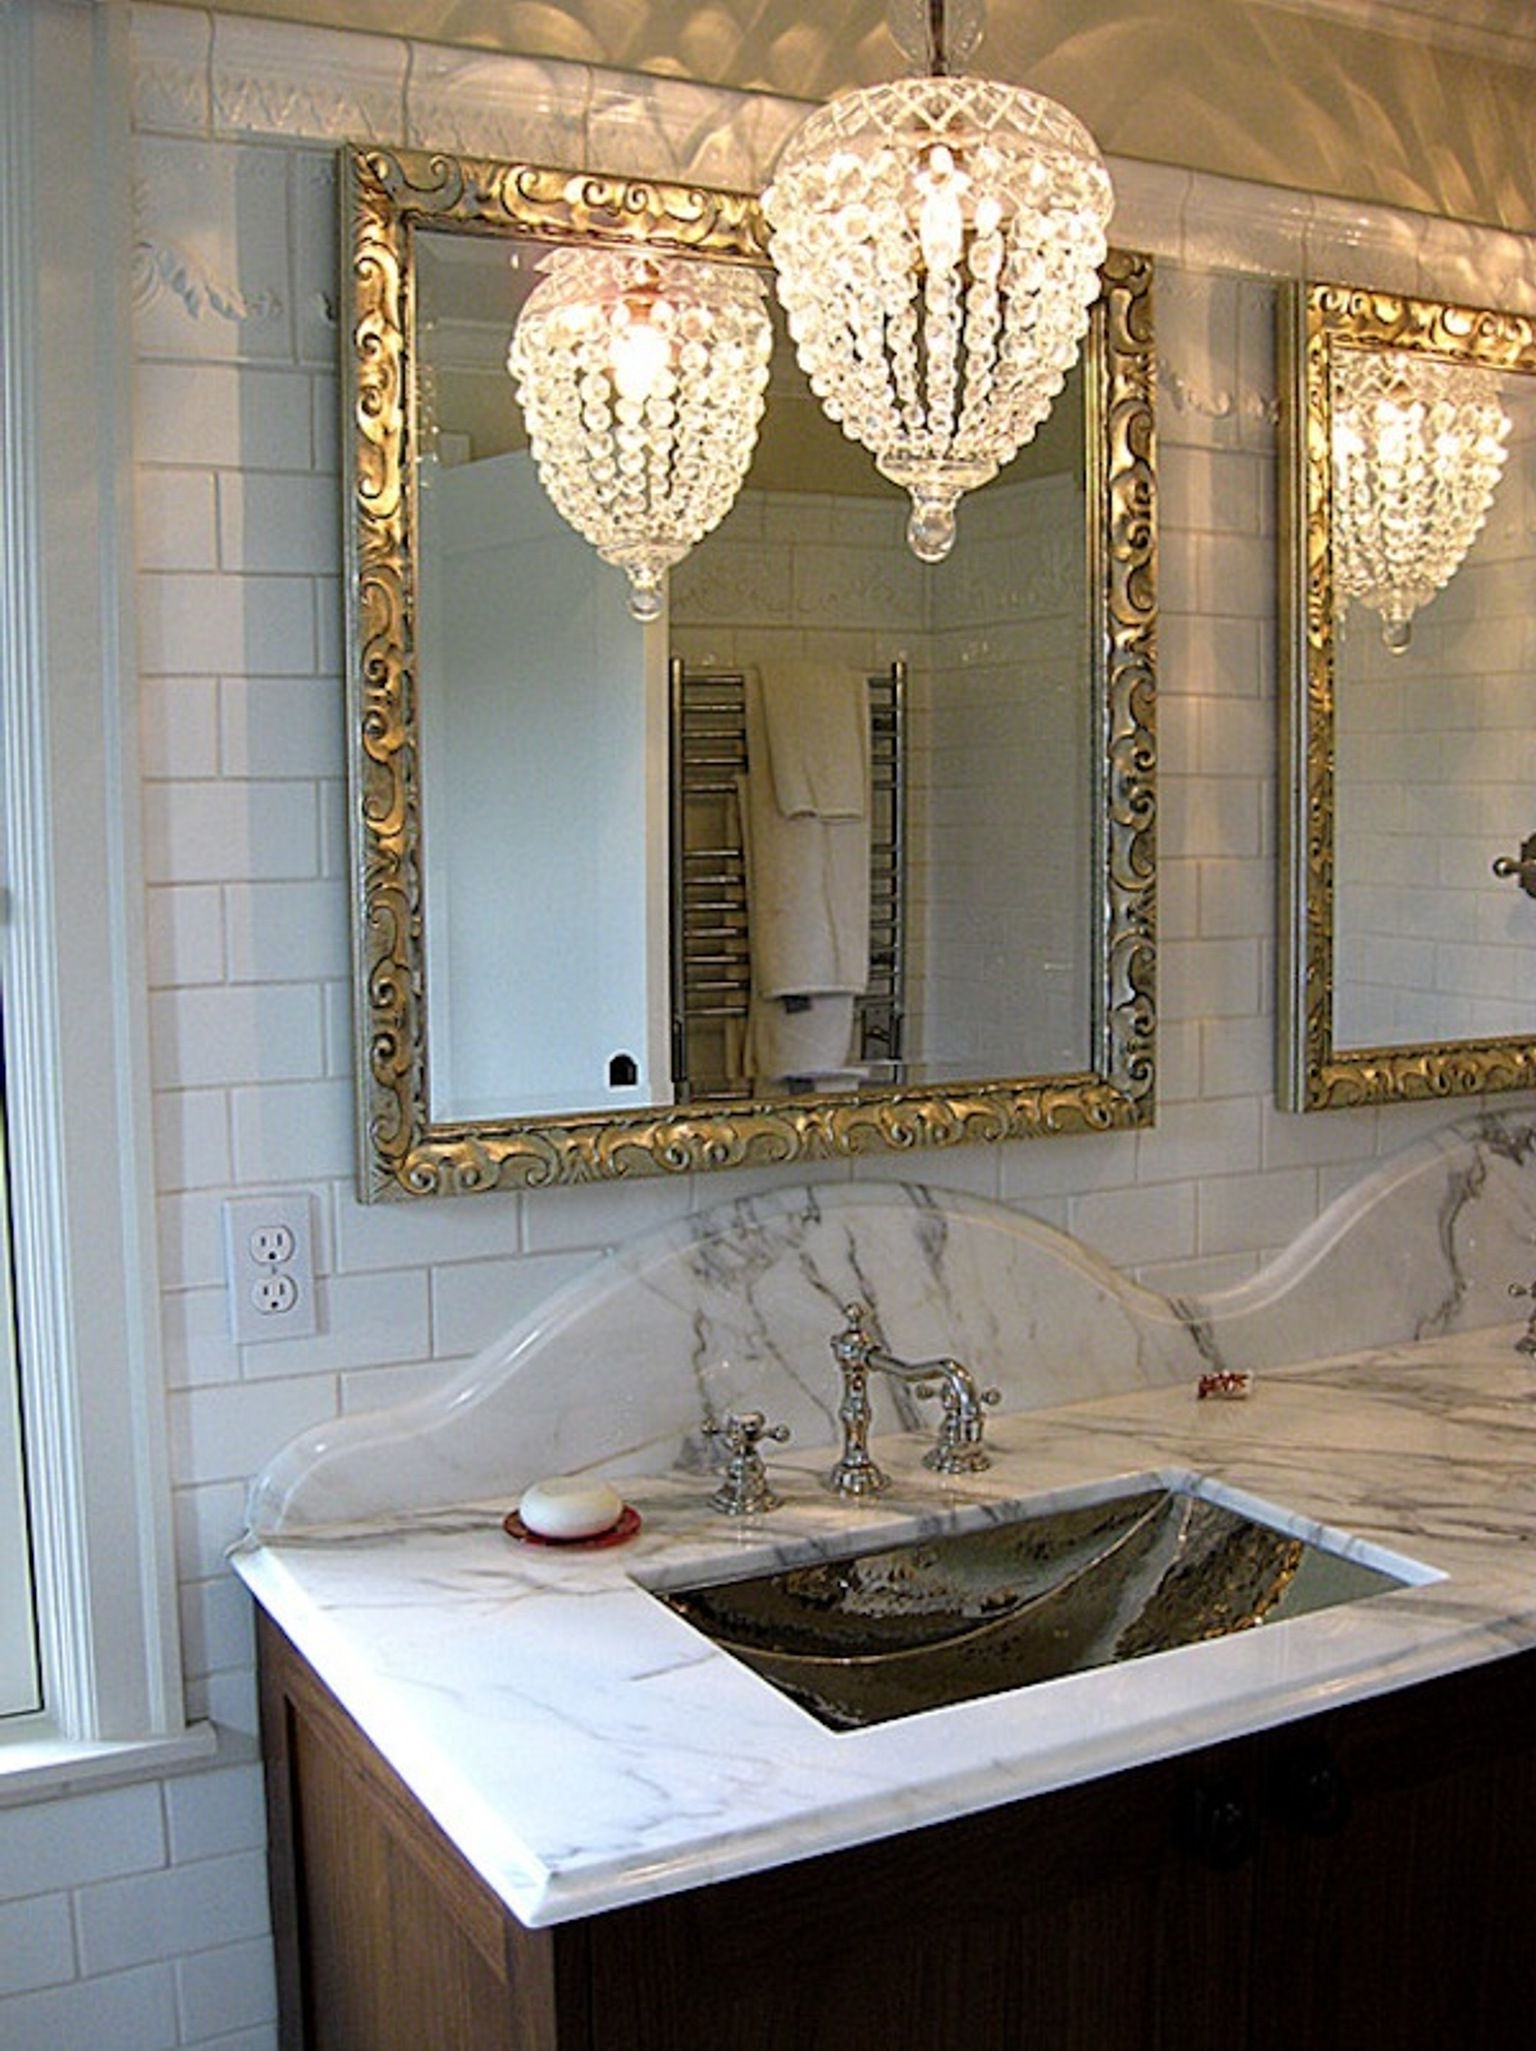 Most Popular Bathroom: Bathroom Chandeliers Crystals Over Tub In A Rustic With Regard To Bathroom Chandeliers (View 12 of 15)